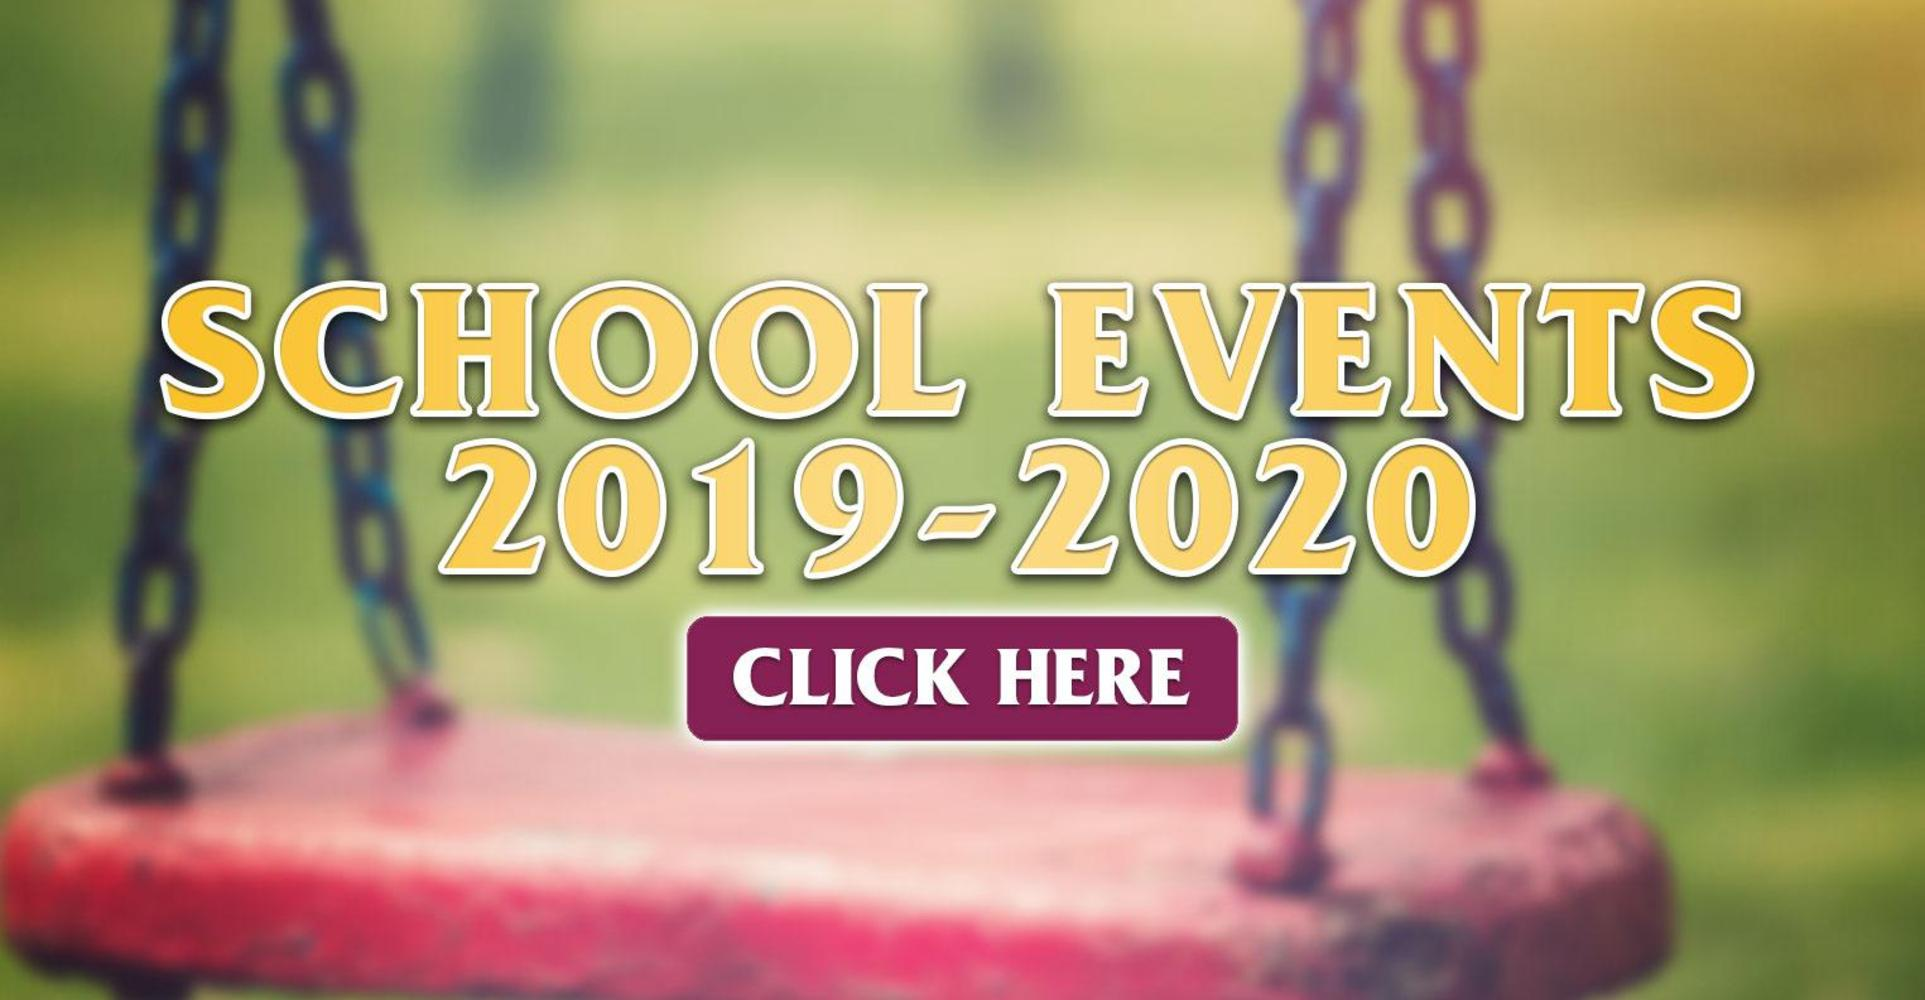 Parkview School Events 2019-2020